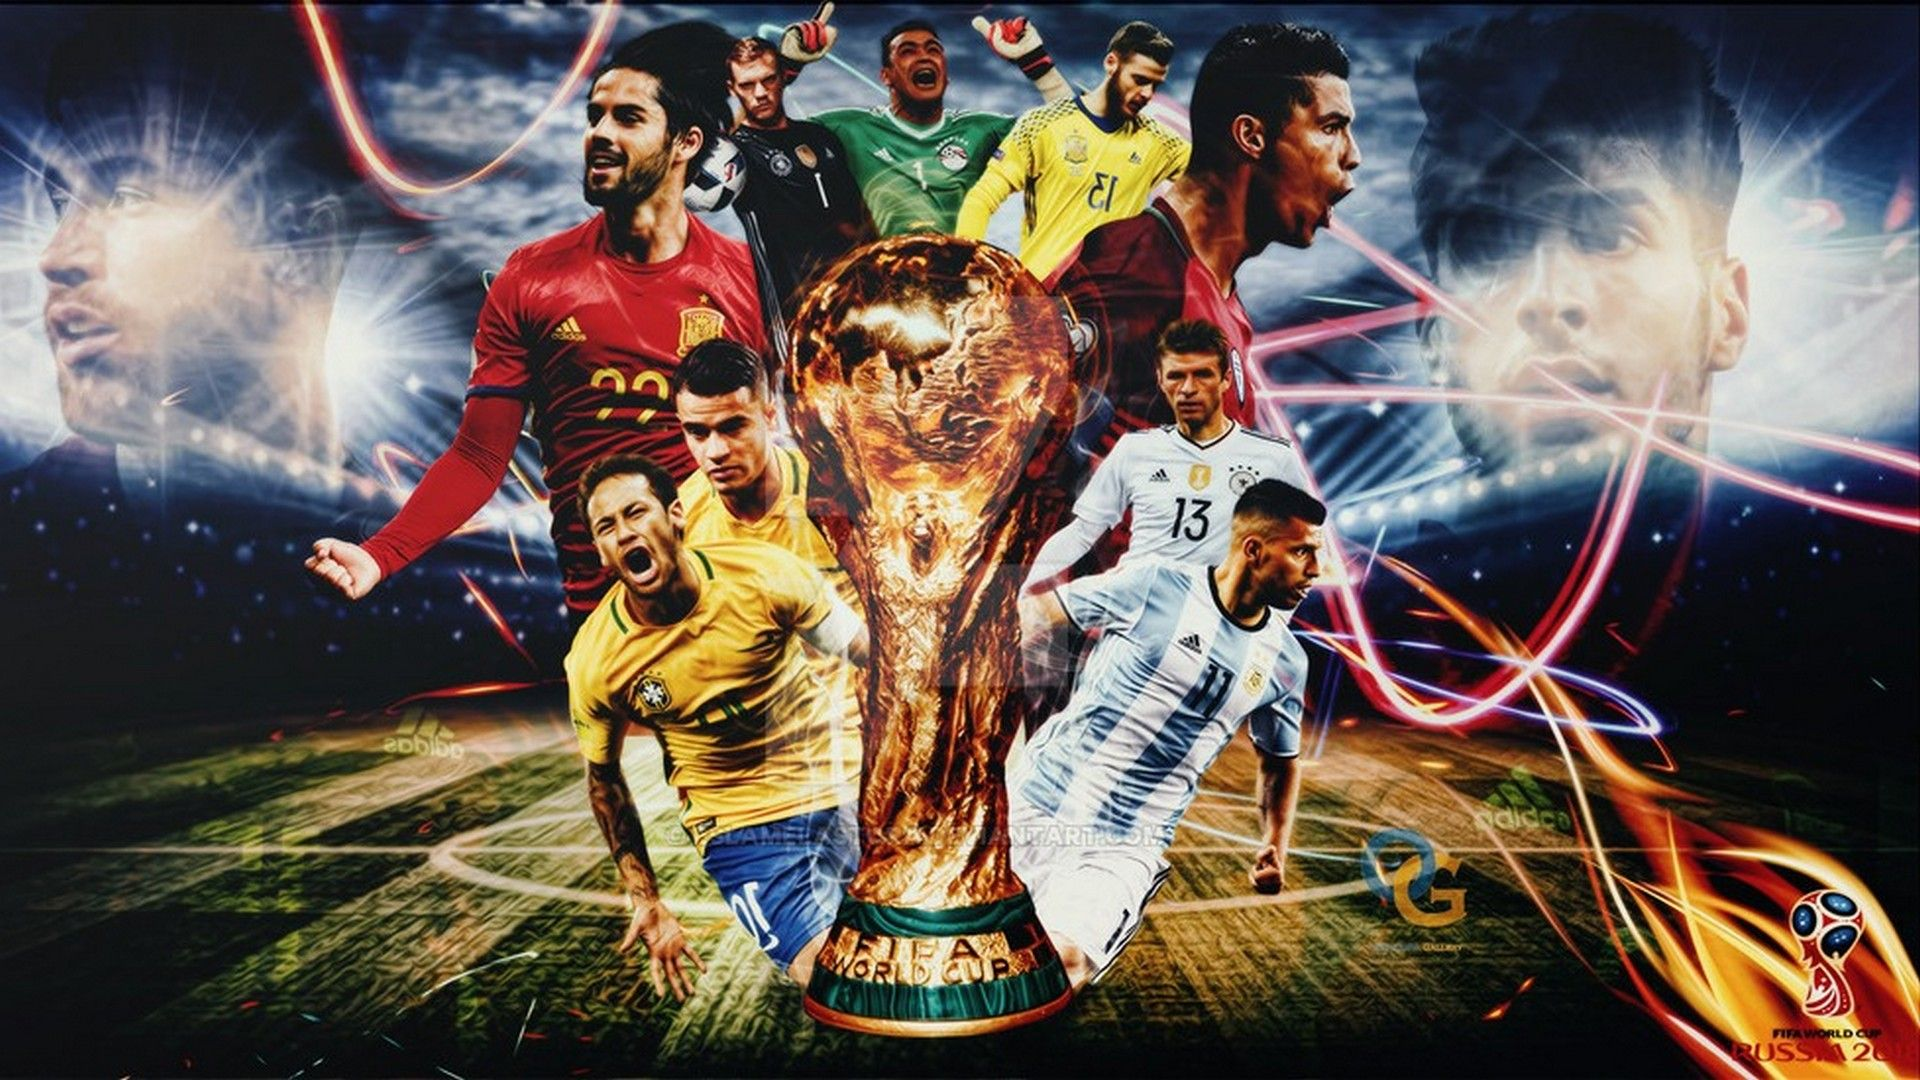 Wallpaper HD 2018 World Cup World cup 2018, World cup